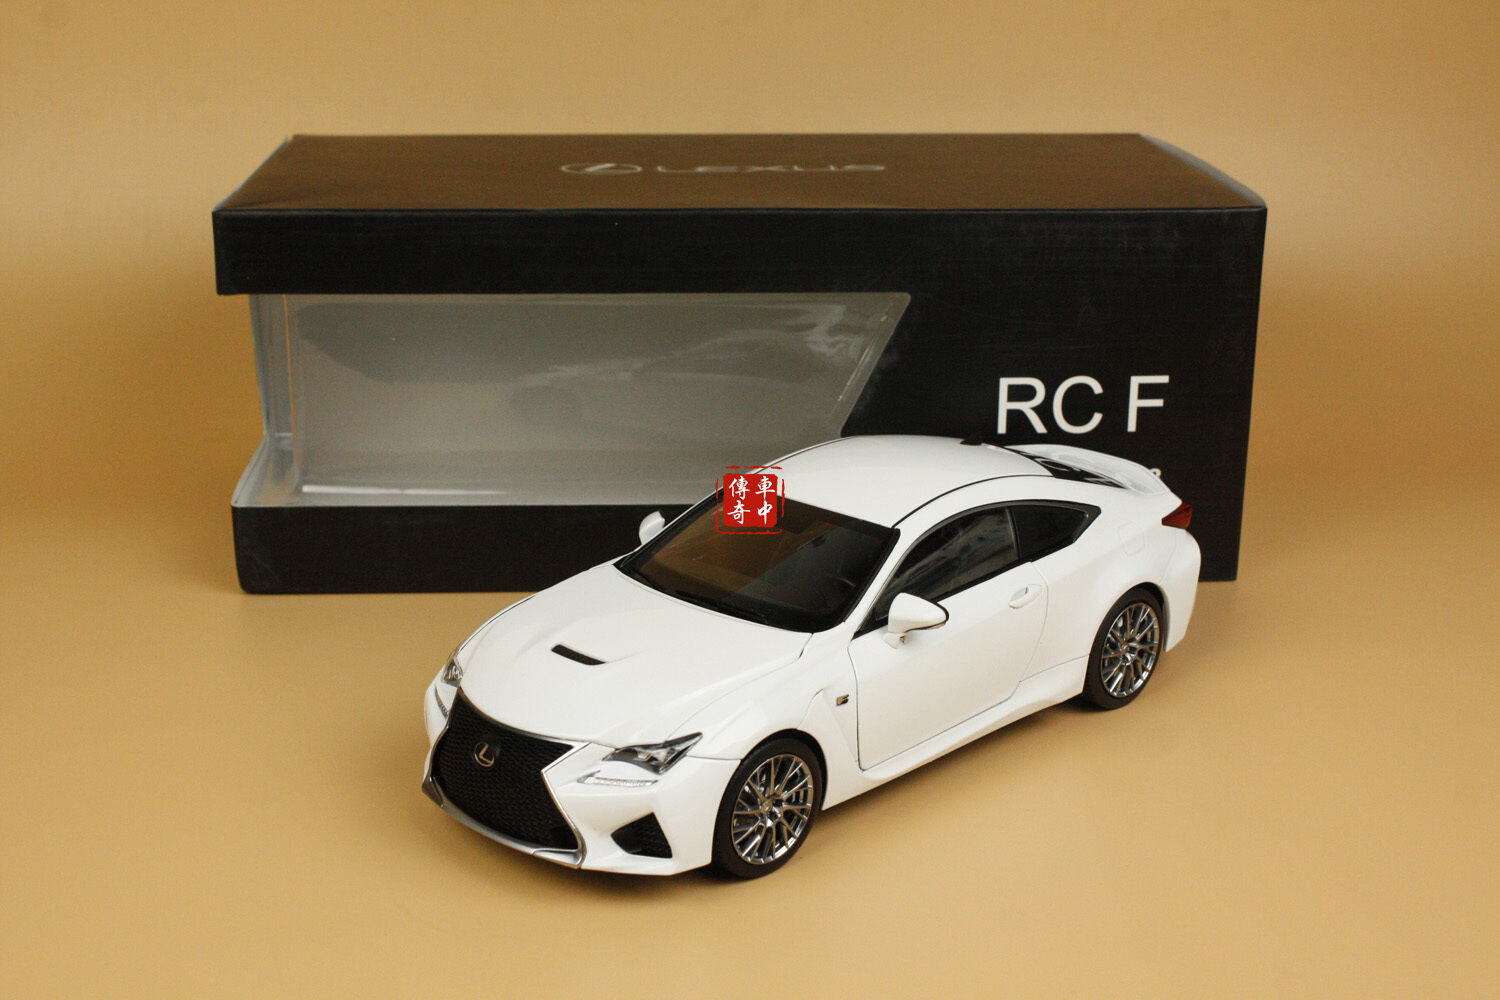 1 18 Lexus RCF RC F white color + gift